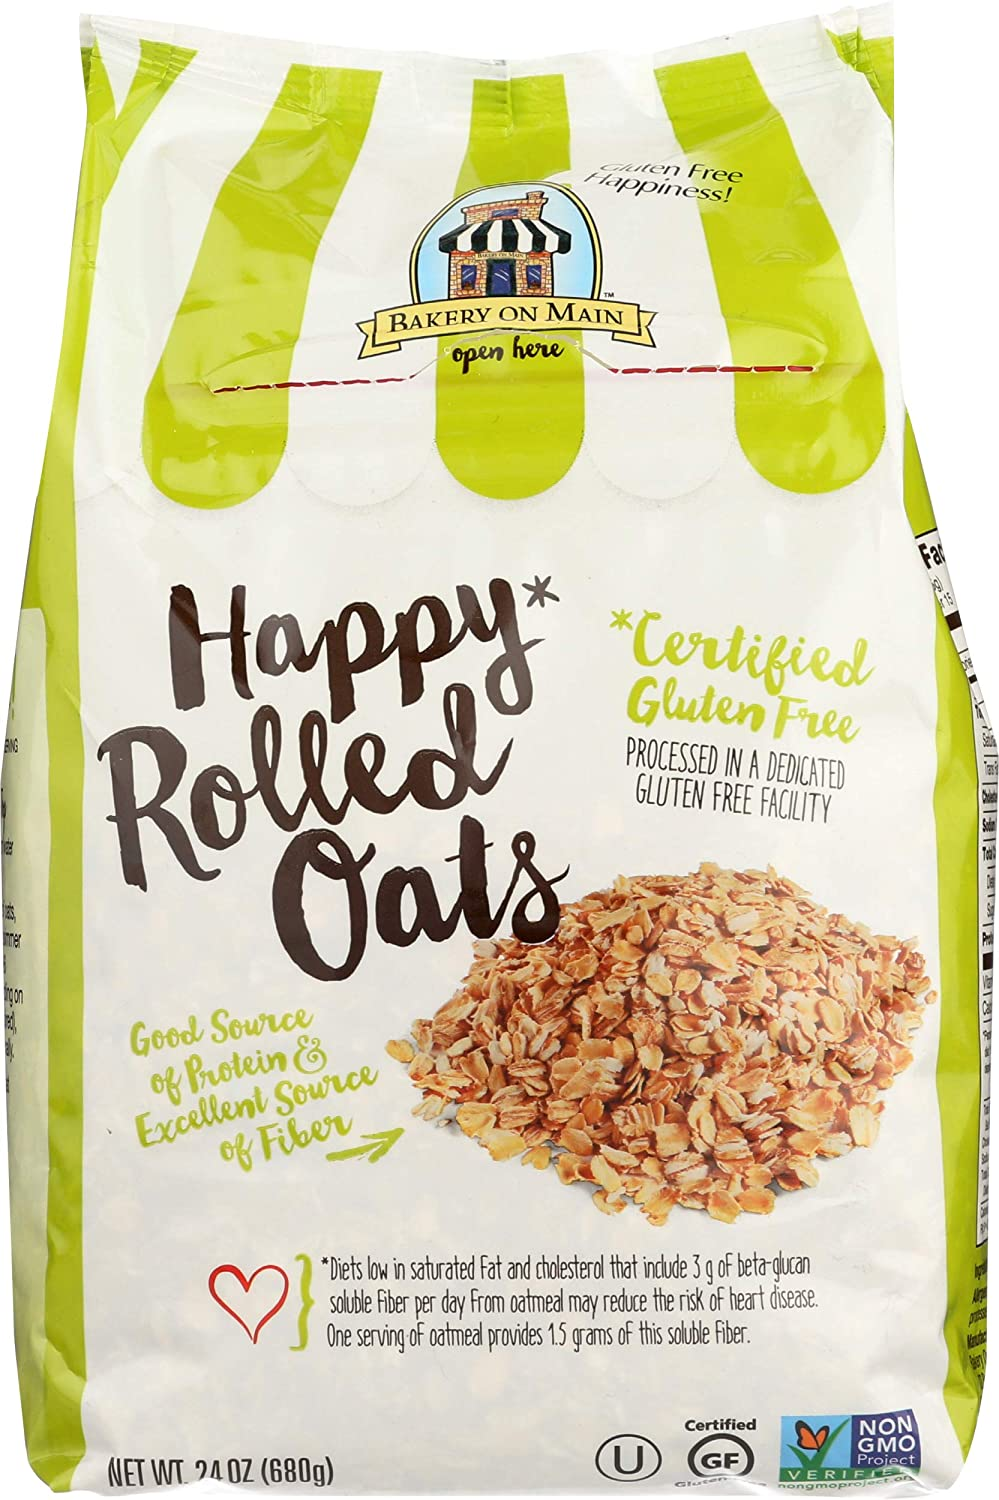 Bakery On Main Gluten-Free, Non-GMO Happy Oats, Rolled, 24 Ounce (Pack of 4)